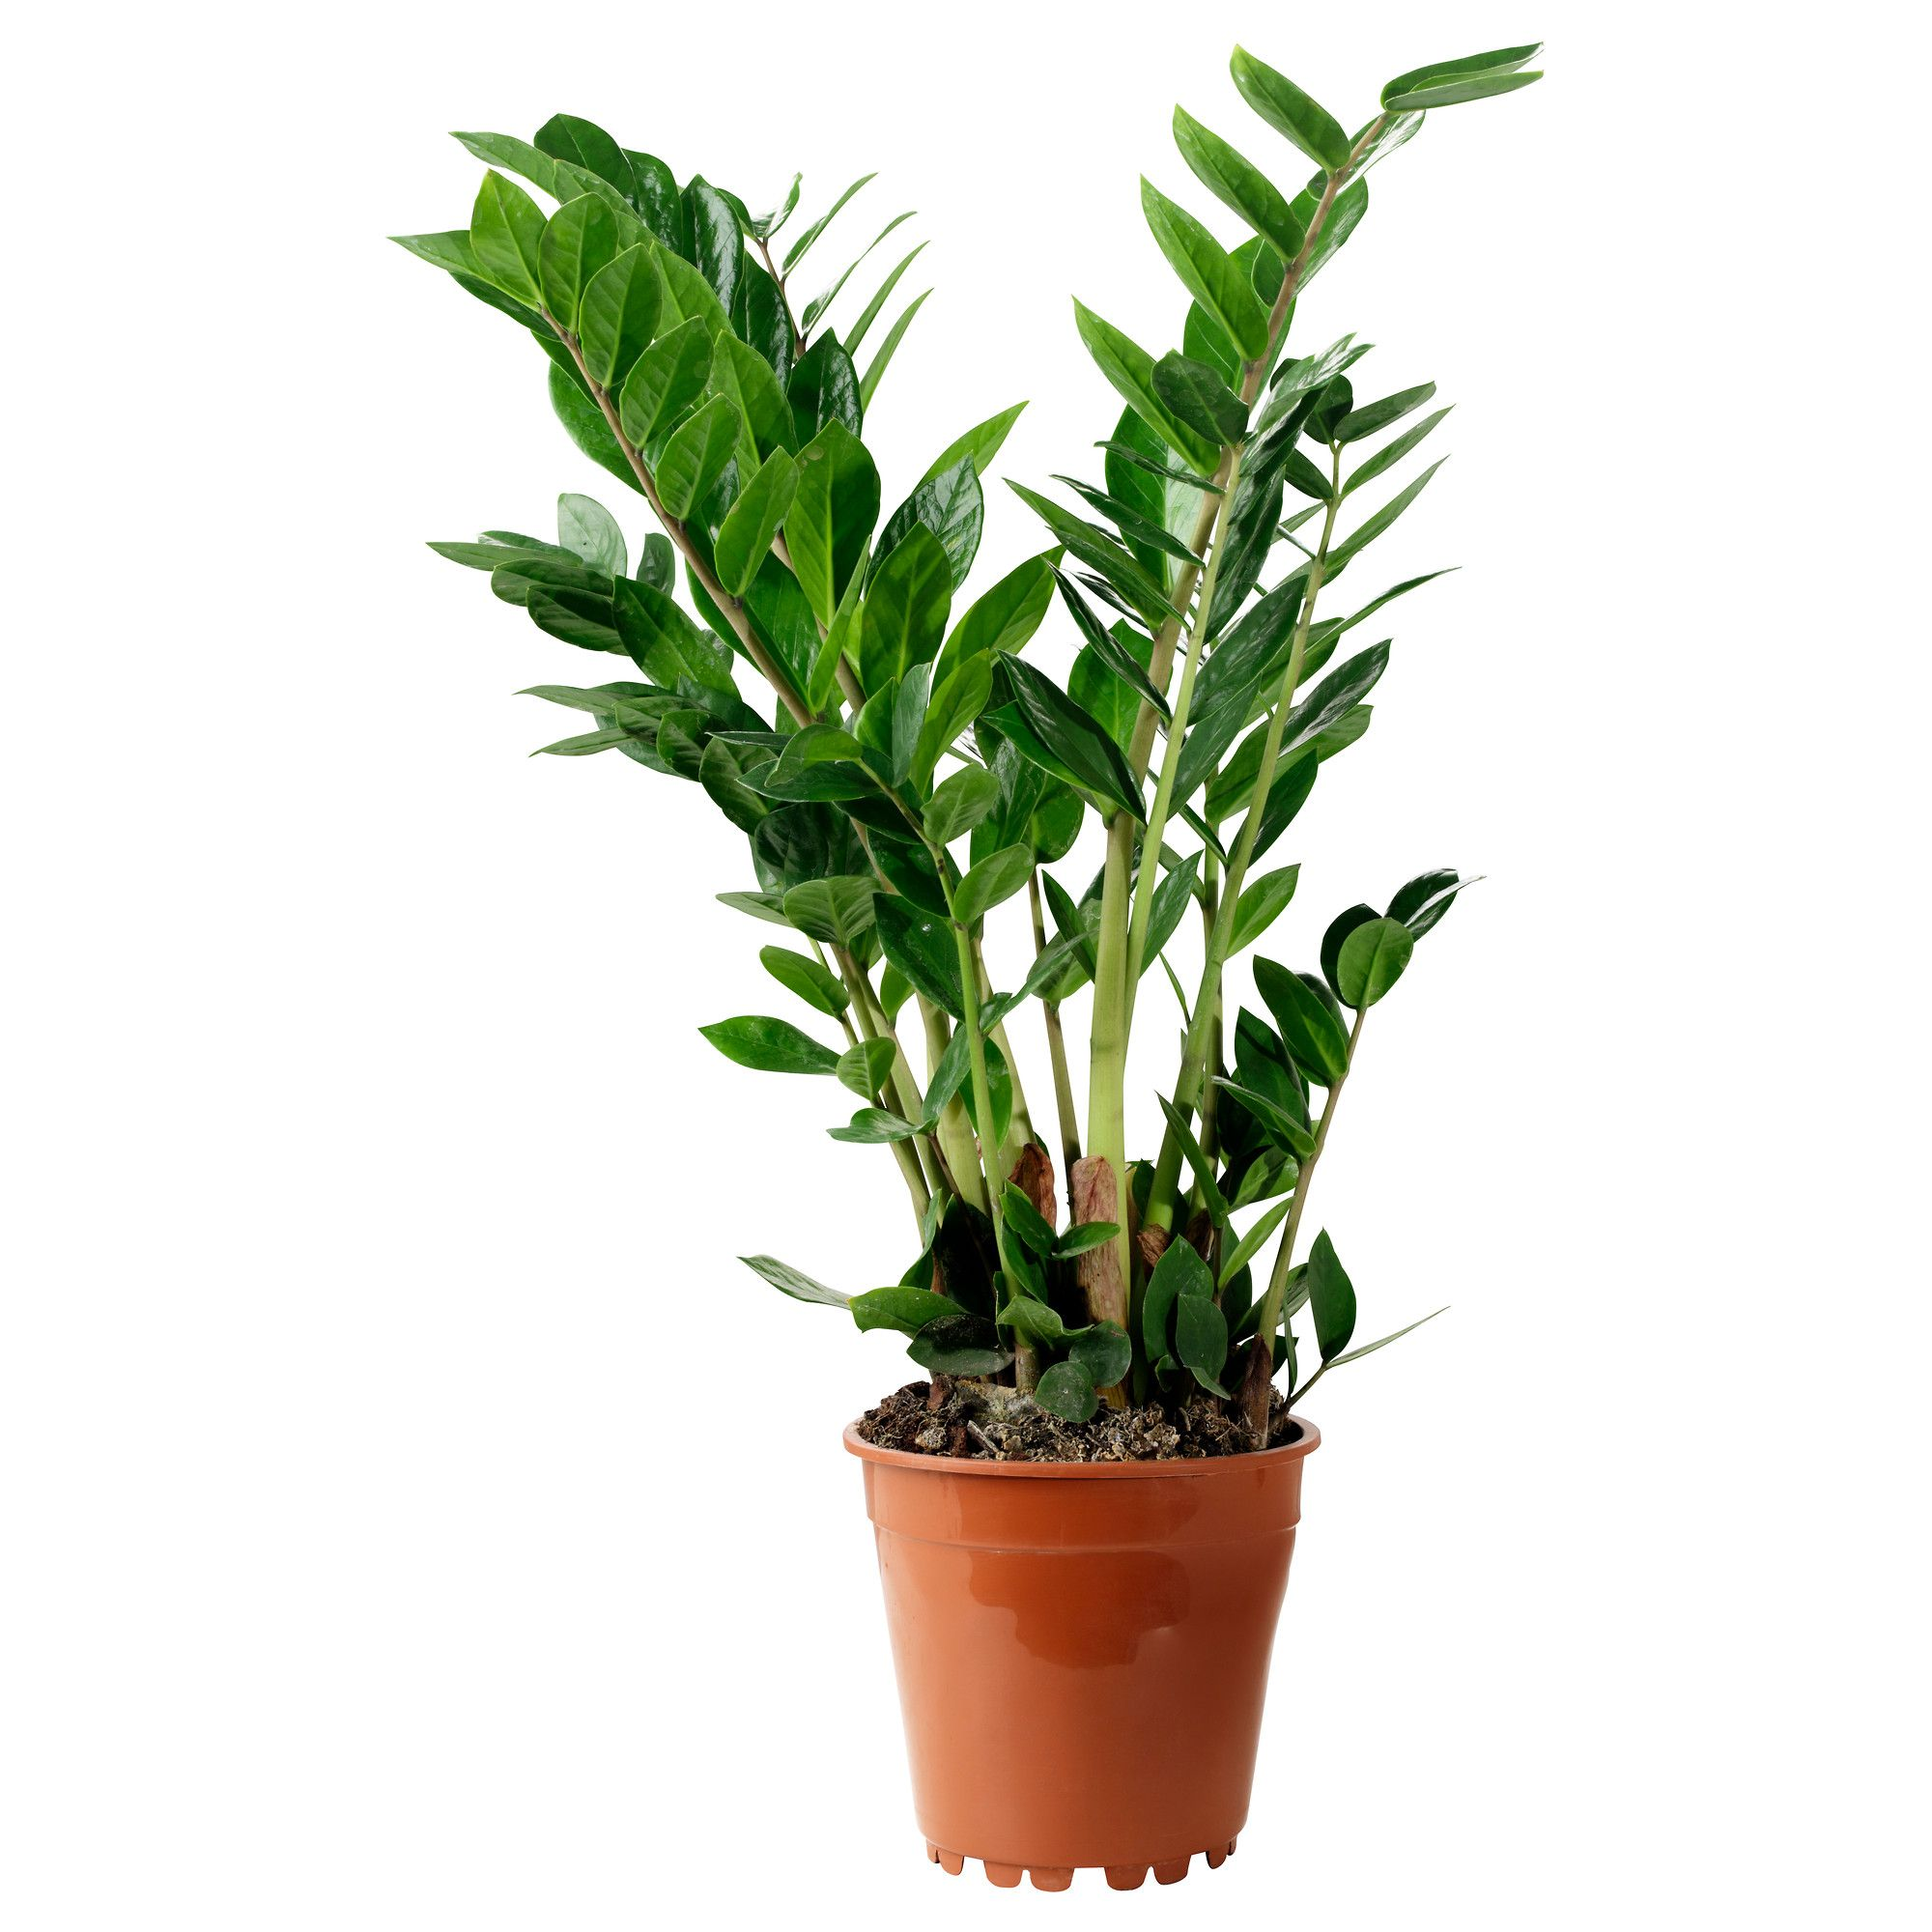 Ikea Planters Large Big House Plants Ikea Grow Tropical Indoor Crowdmedia